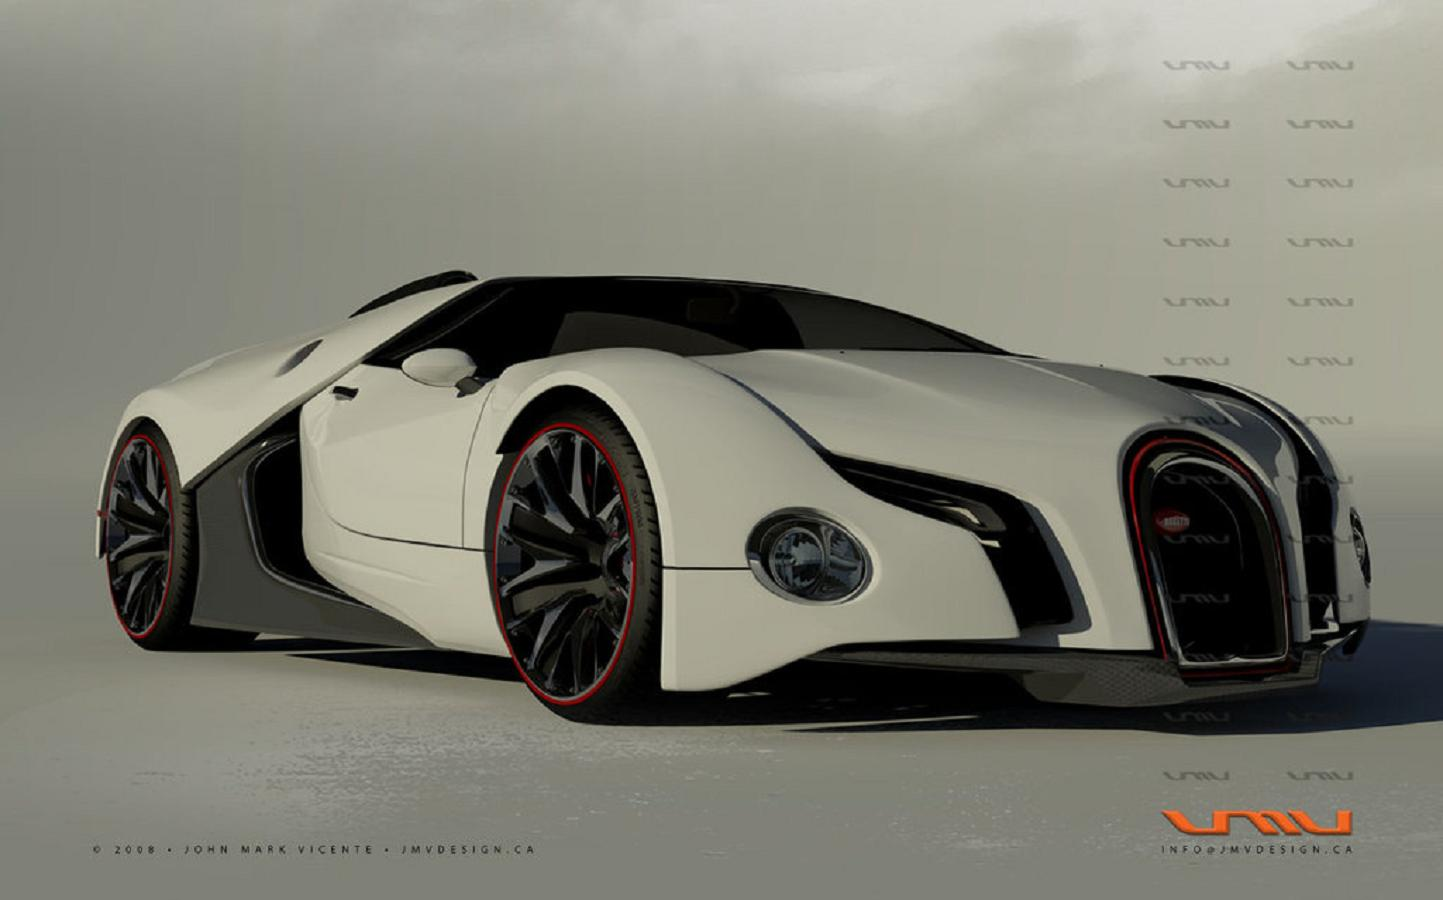 Coolest Car In The World Wallpaper Top 31 Most Beautiful And Fabulous Bugatti Car Wallpapers